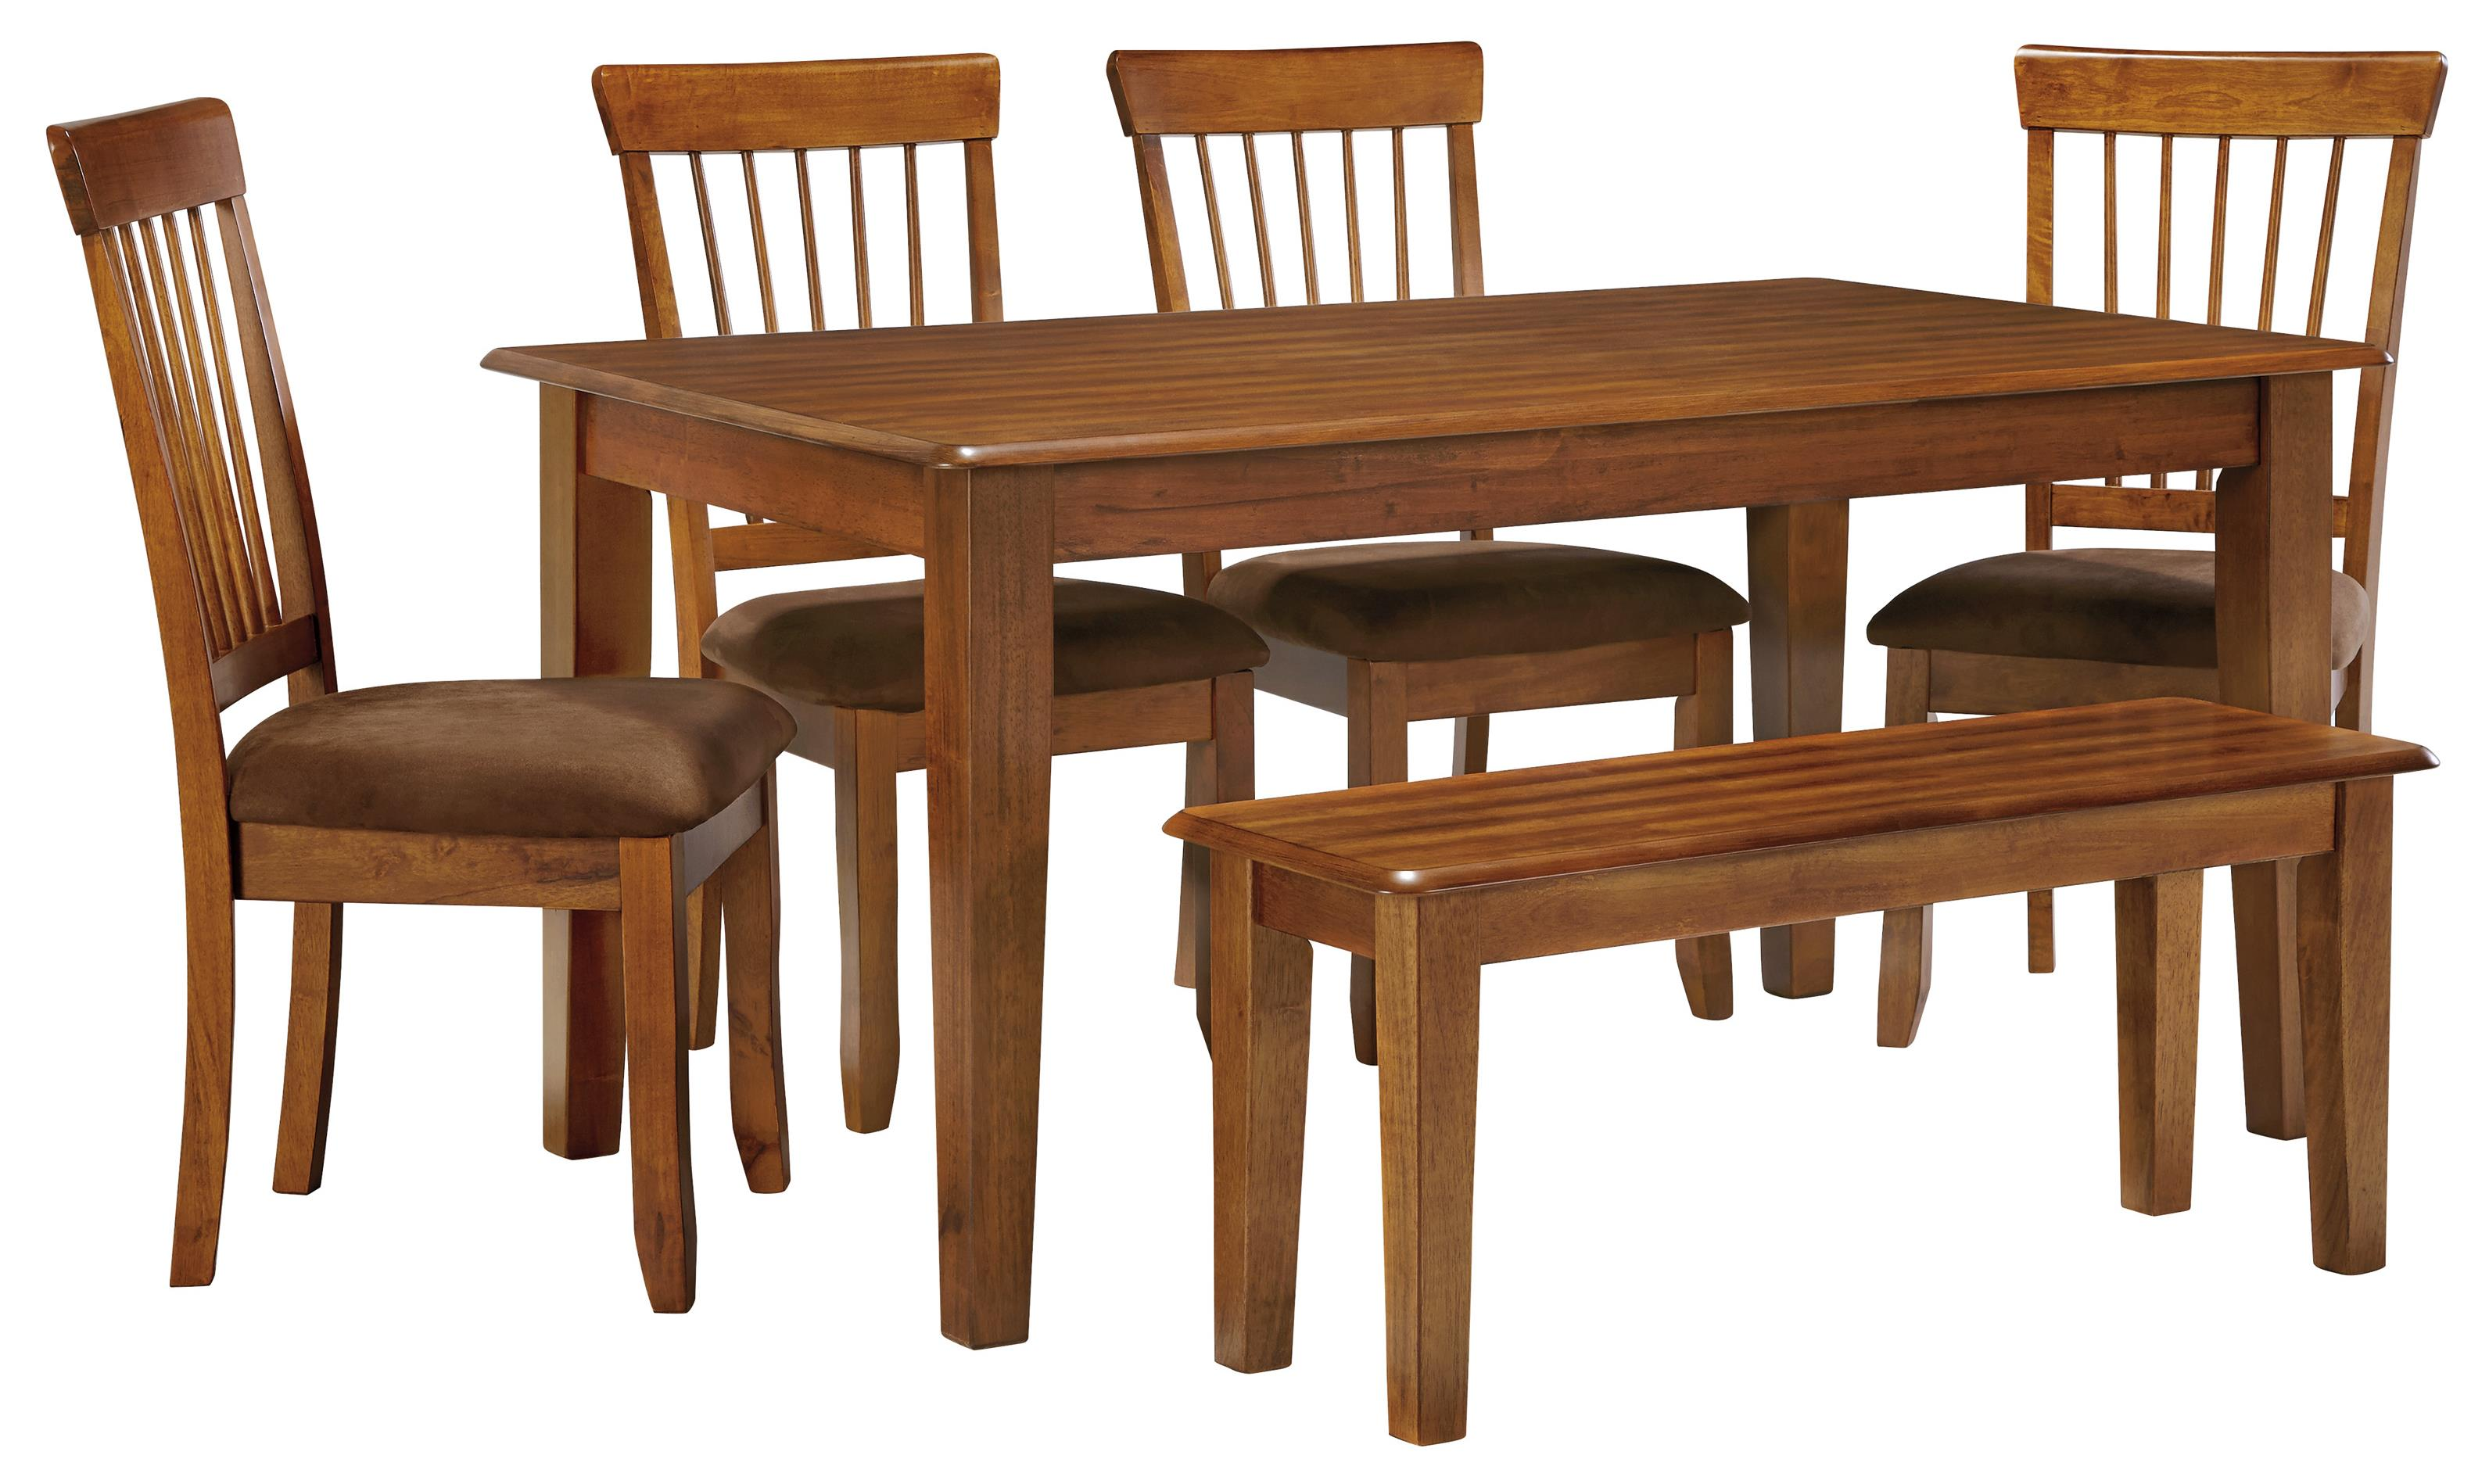 ashley furniture berringer 36 x 60 table with 4 chairs bench beck 39 s furniture table. Black Bedroom Furniture Sets. Home Design Ideas